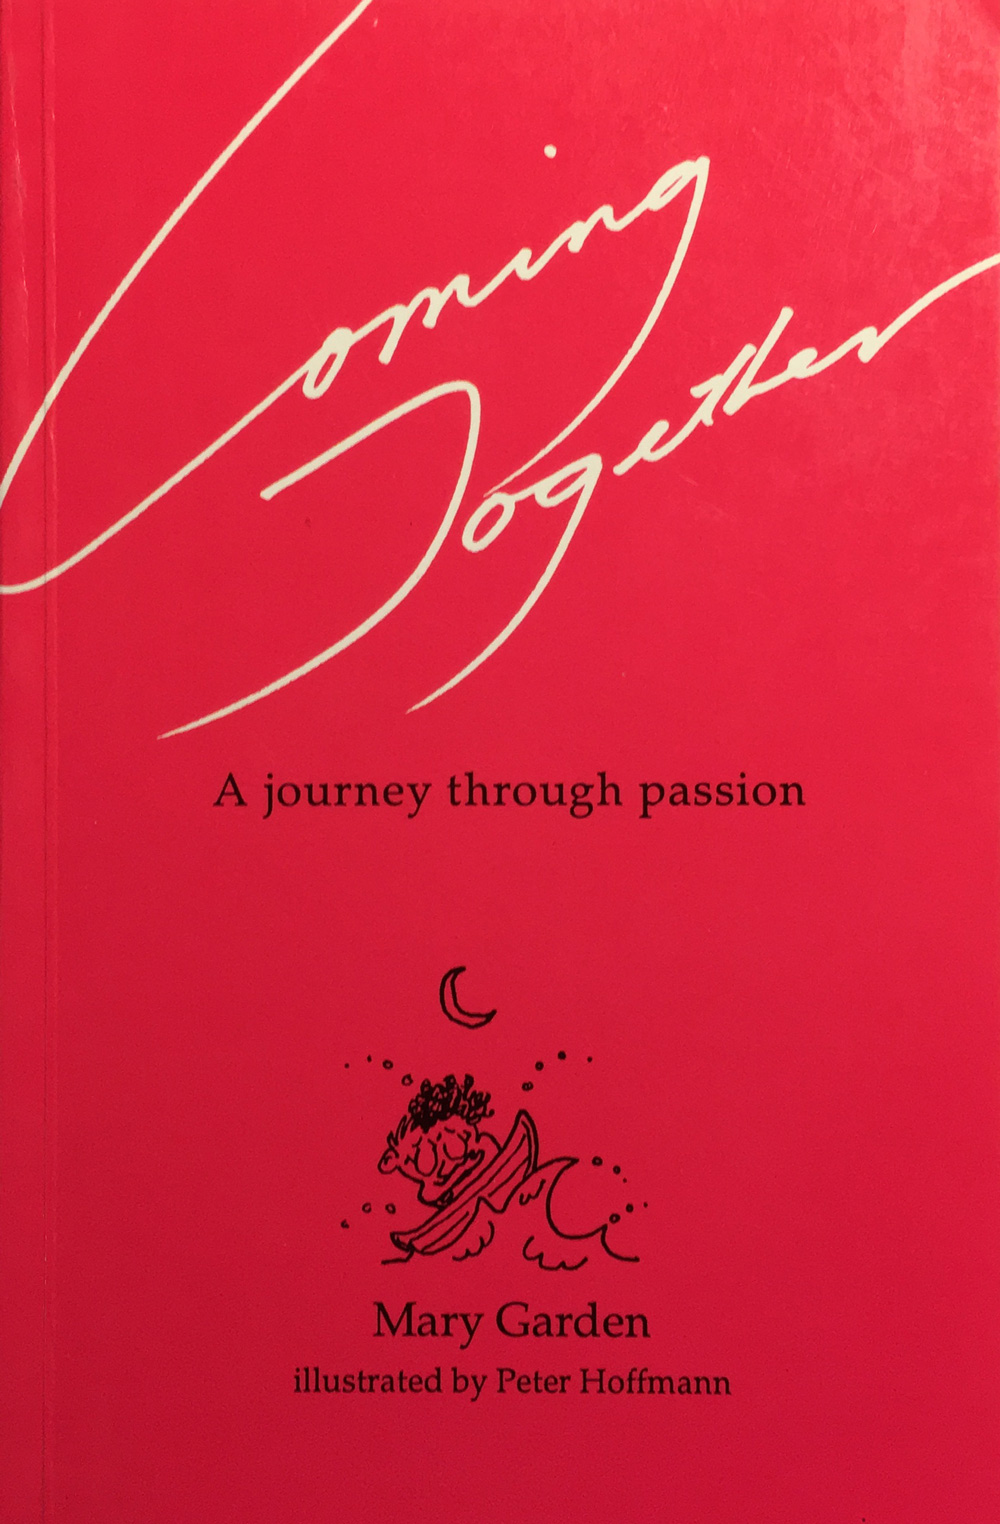 coming-together-book-front.jpg